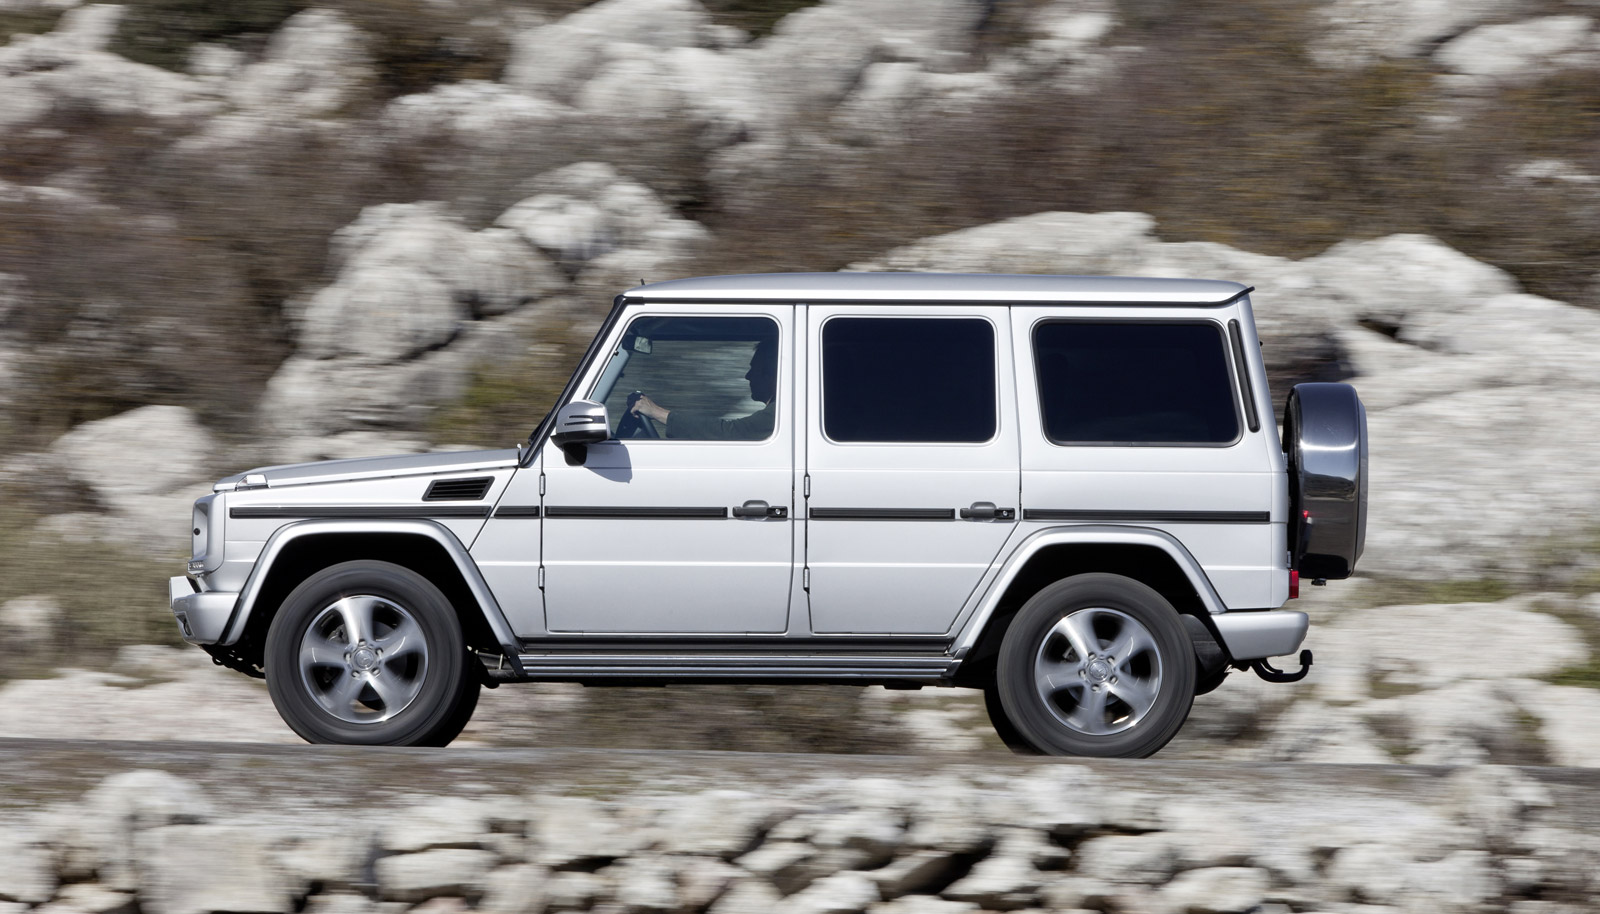 mercedes benz announces g65 amg power and price both ridiculous. Black Bedroom Furniture Sets. Home Design Ideas